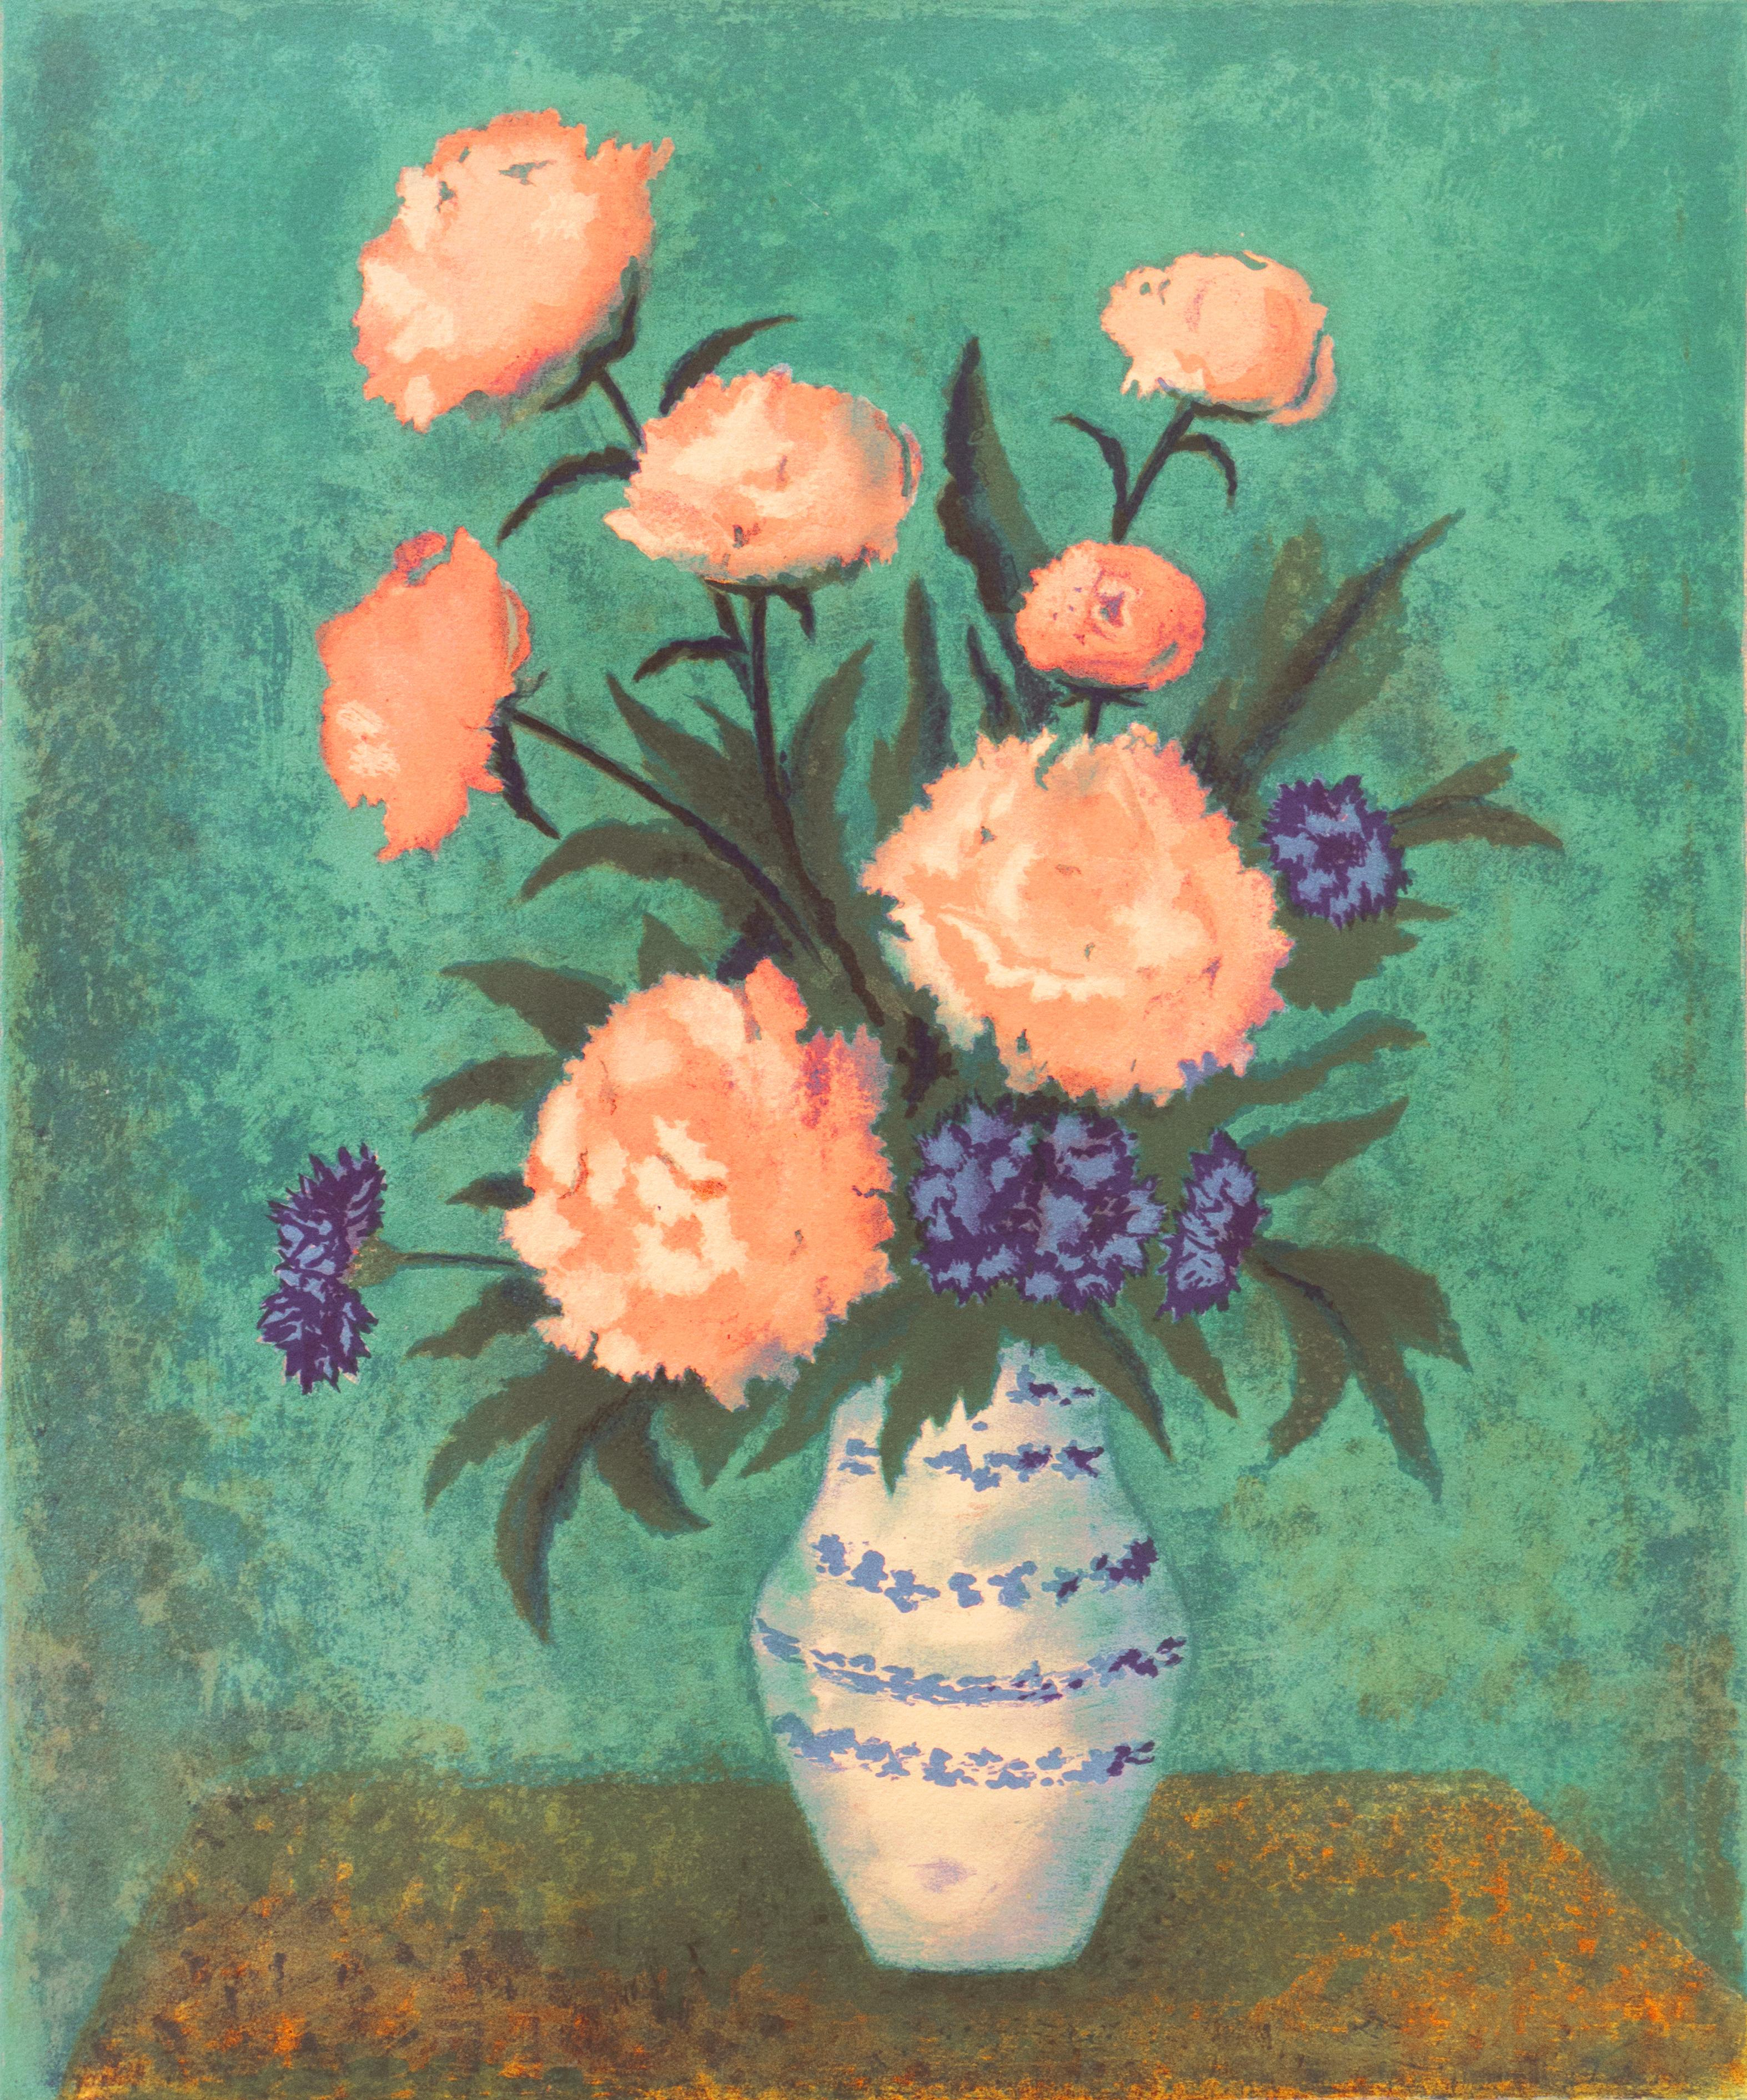 'Dog Roses and Carnations' Modernist Lithograph, Spanish Woman Artist, Barcelona